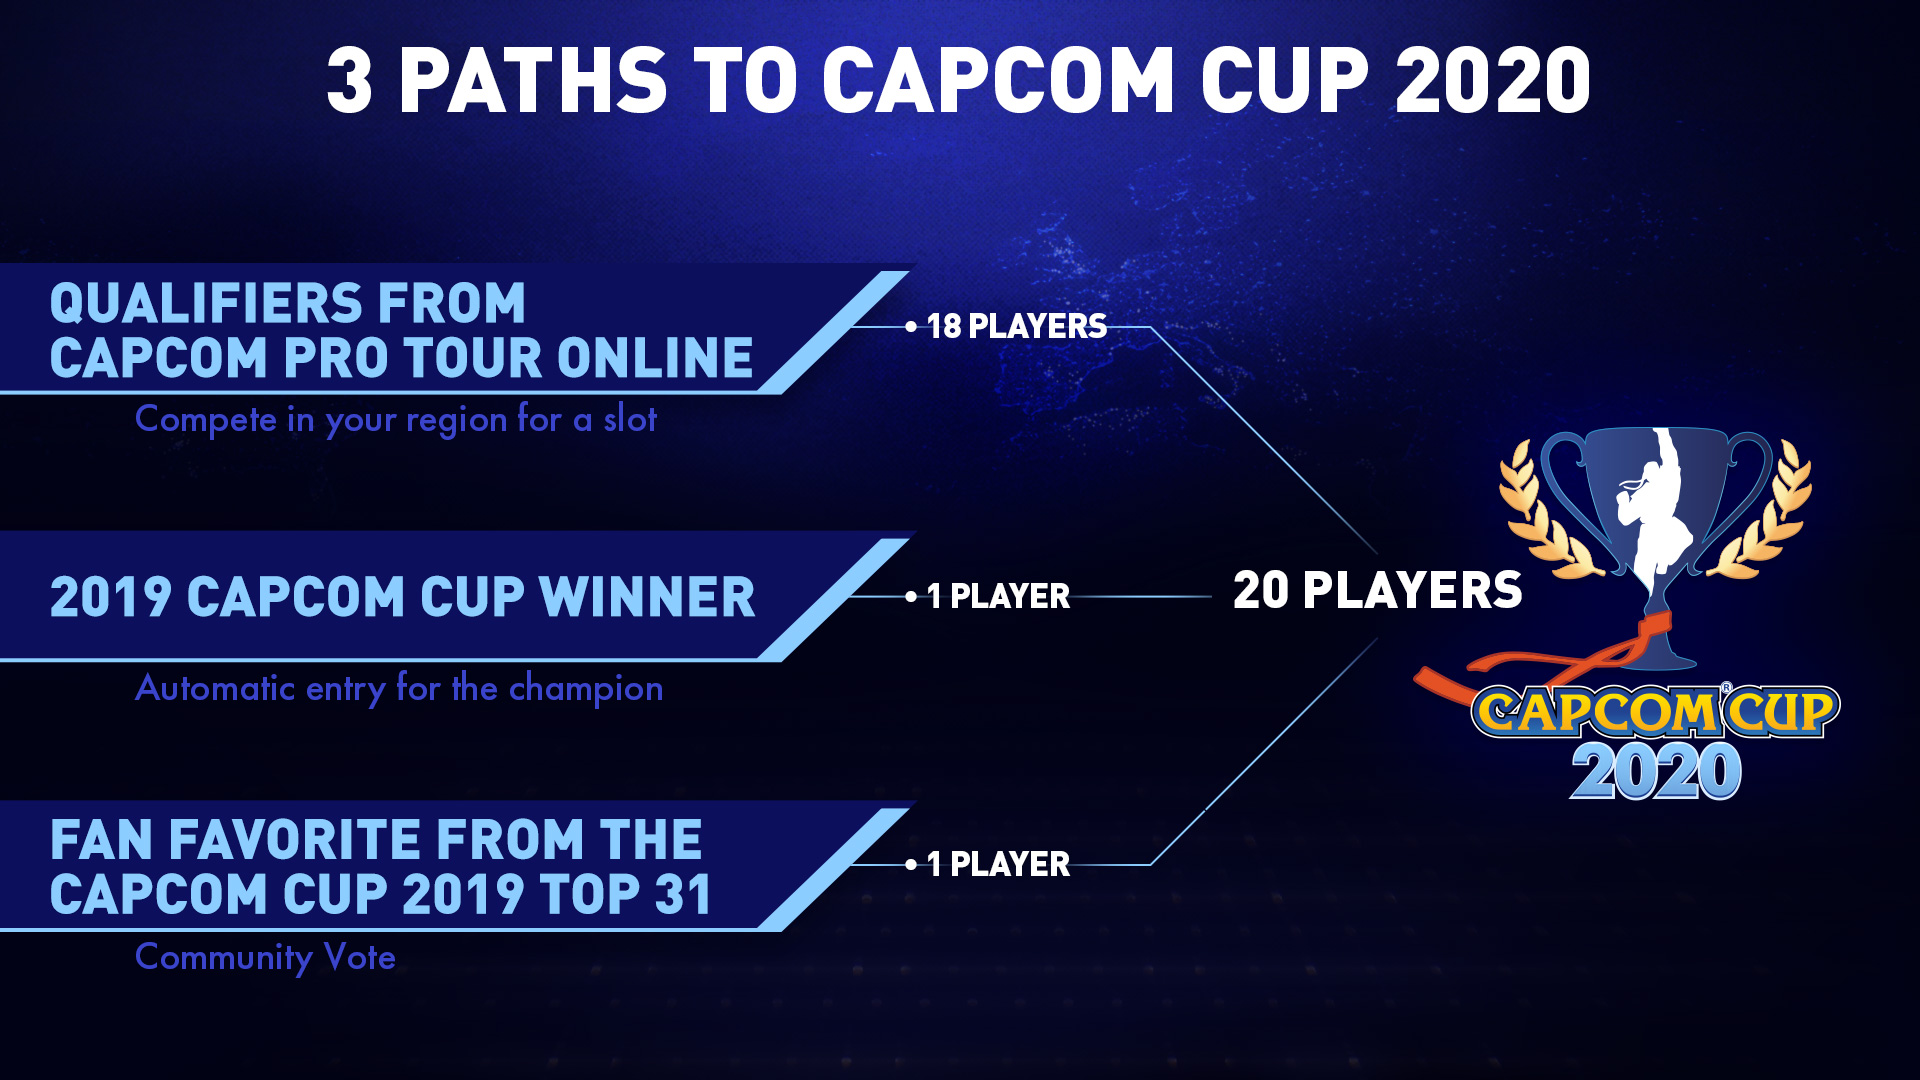 Three paths to the CAPCOM Cup 2020